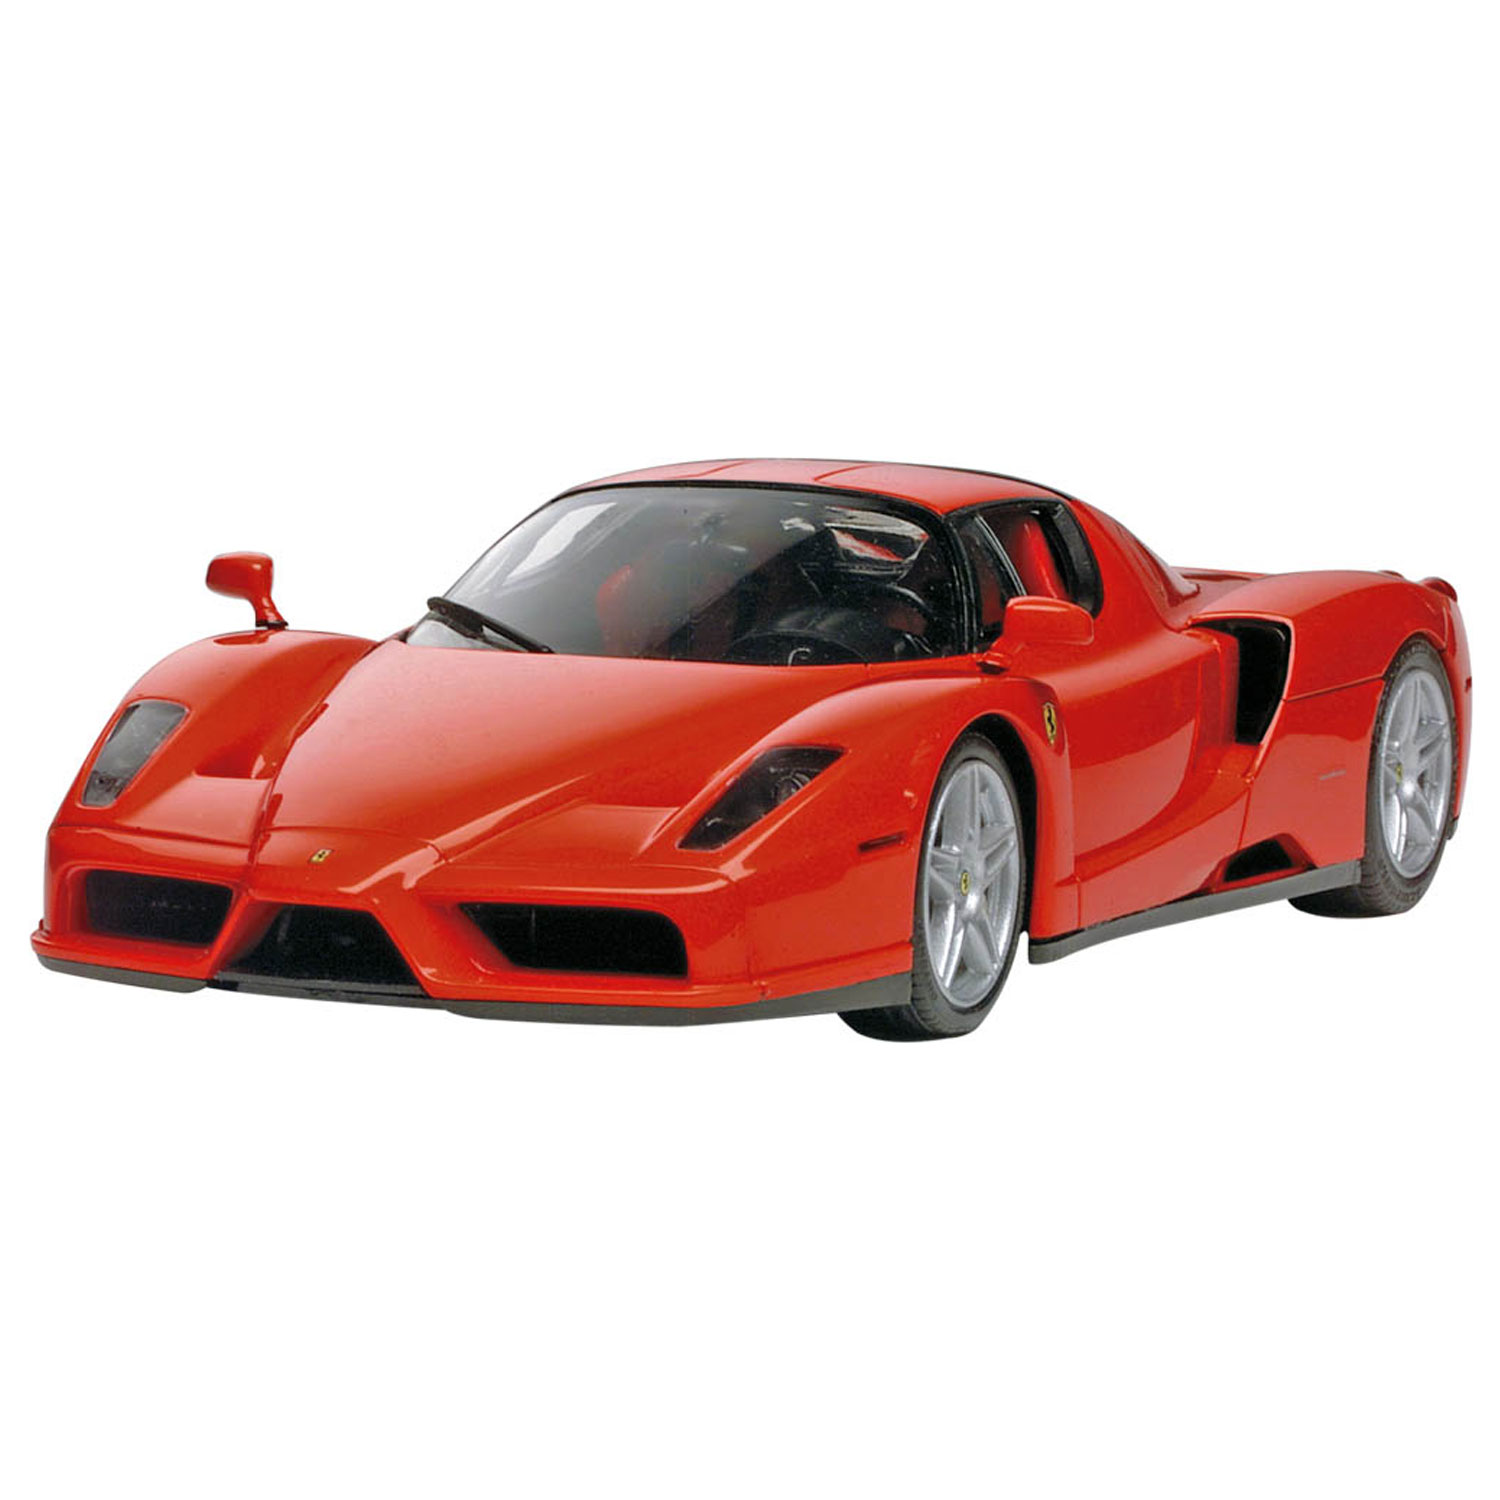 revell 07309 ferrari enzo ferrari maquette chelle 1 24 comparer avec. Black Bedroom Furniture Sets. Home Design Ideas